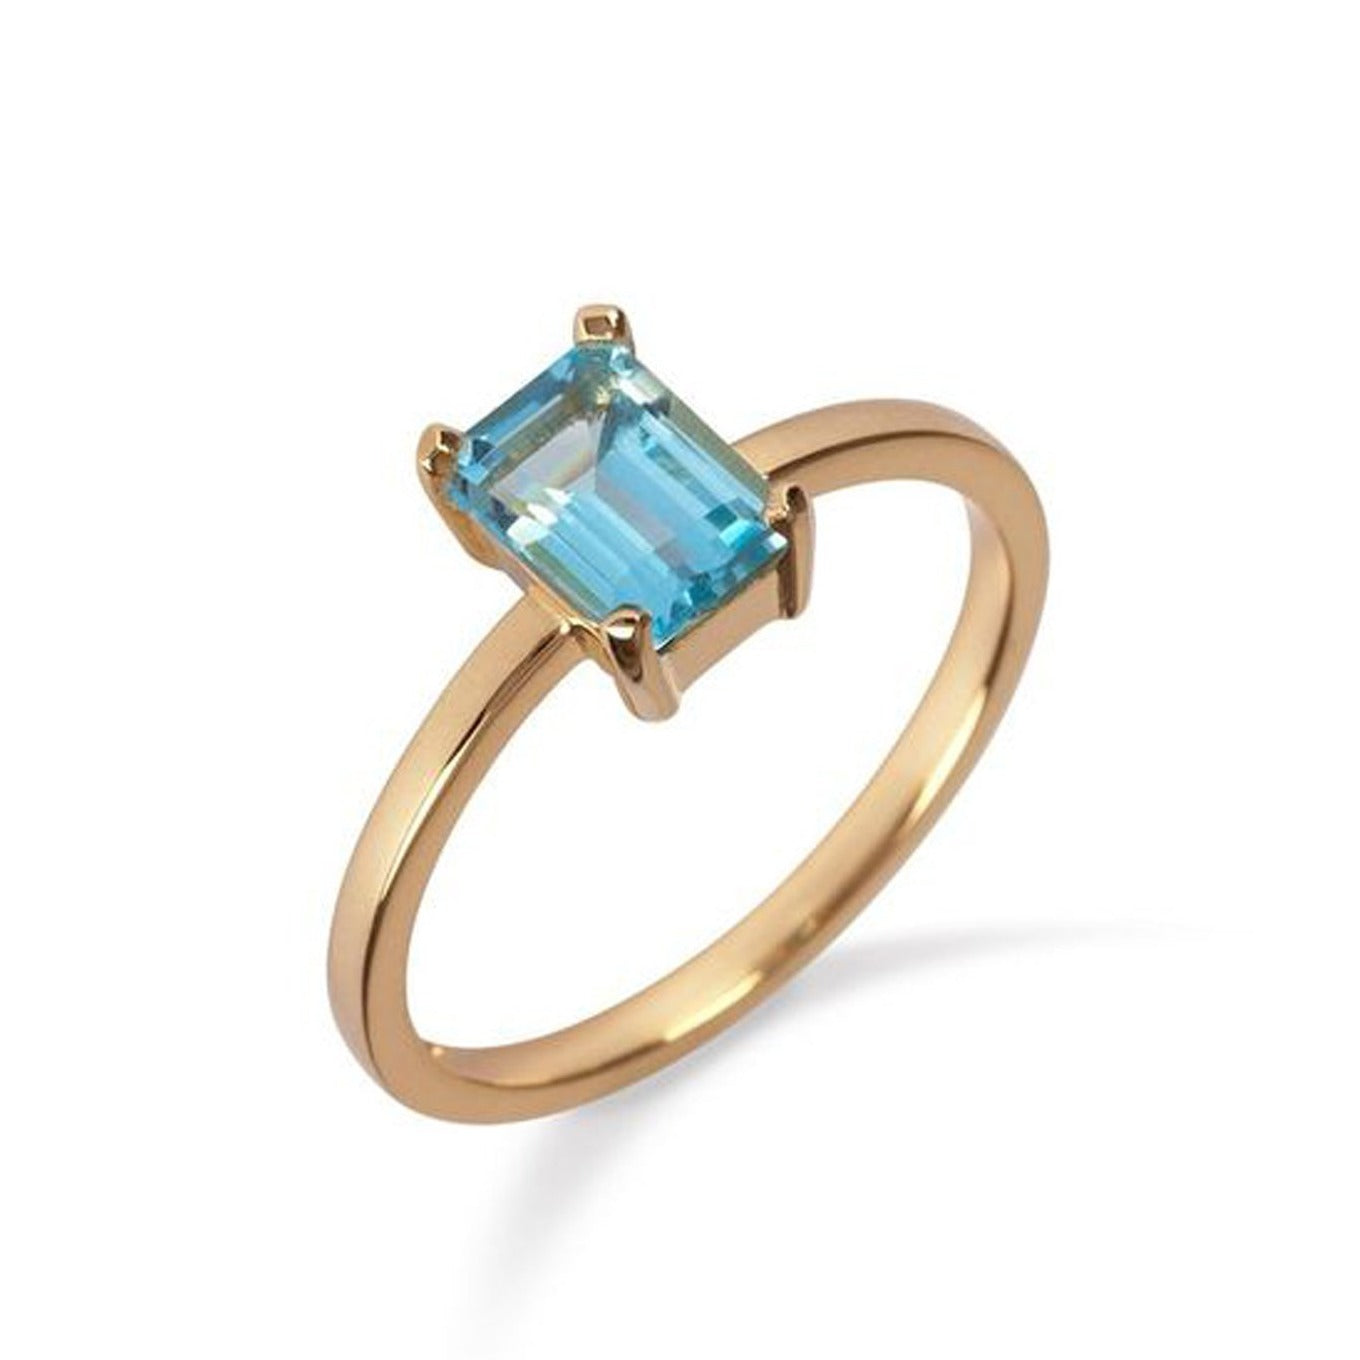 18kt Yellow Gold Ring with Blue Topaz - MoMuse Jewellery